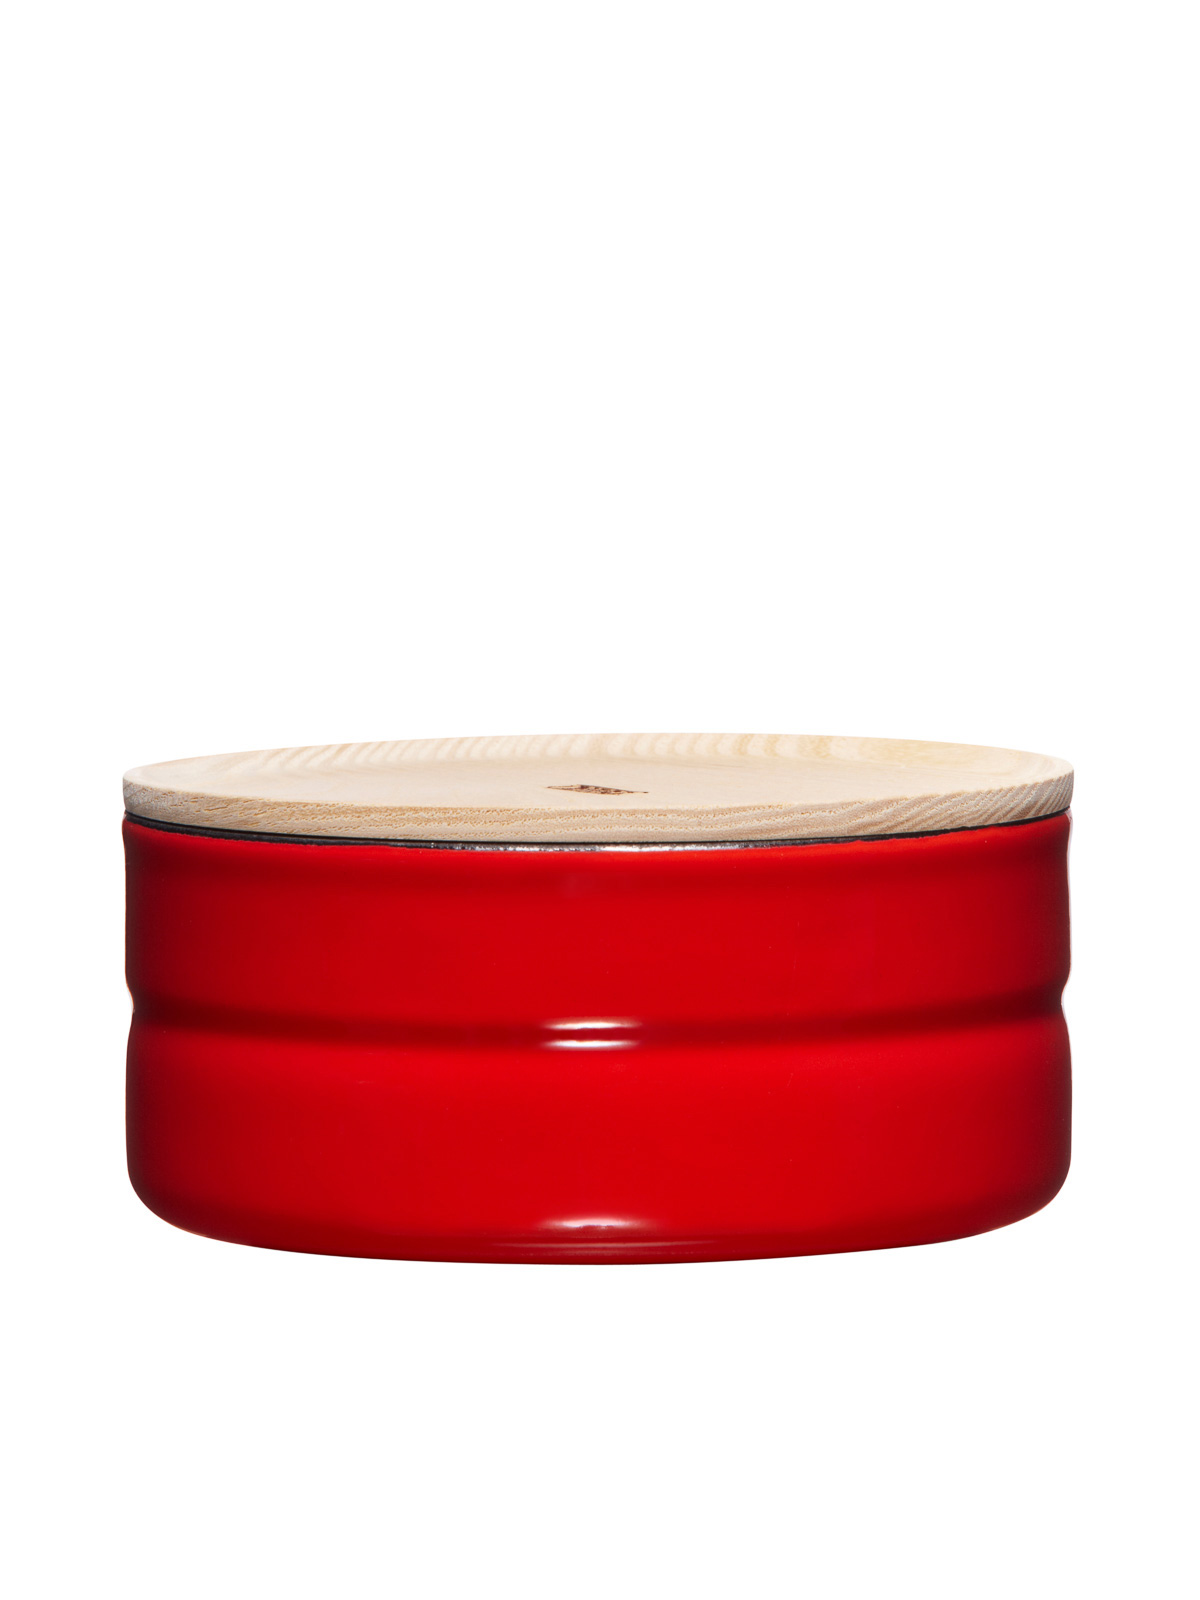 storage container red tomato 615 ml (2173-213)